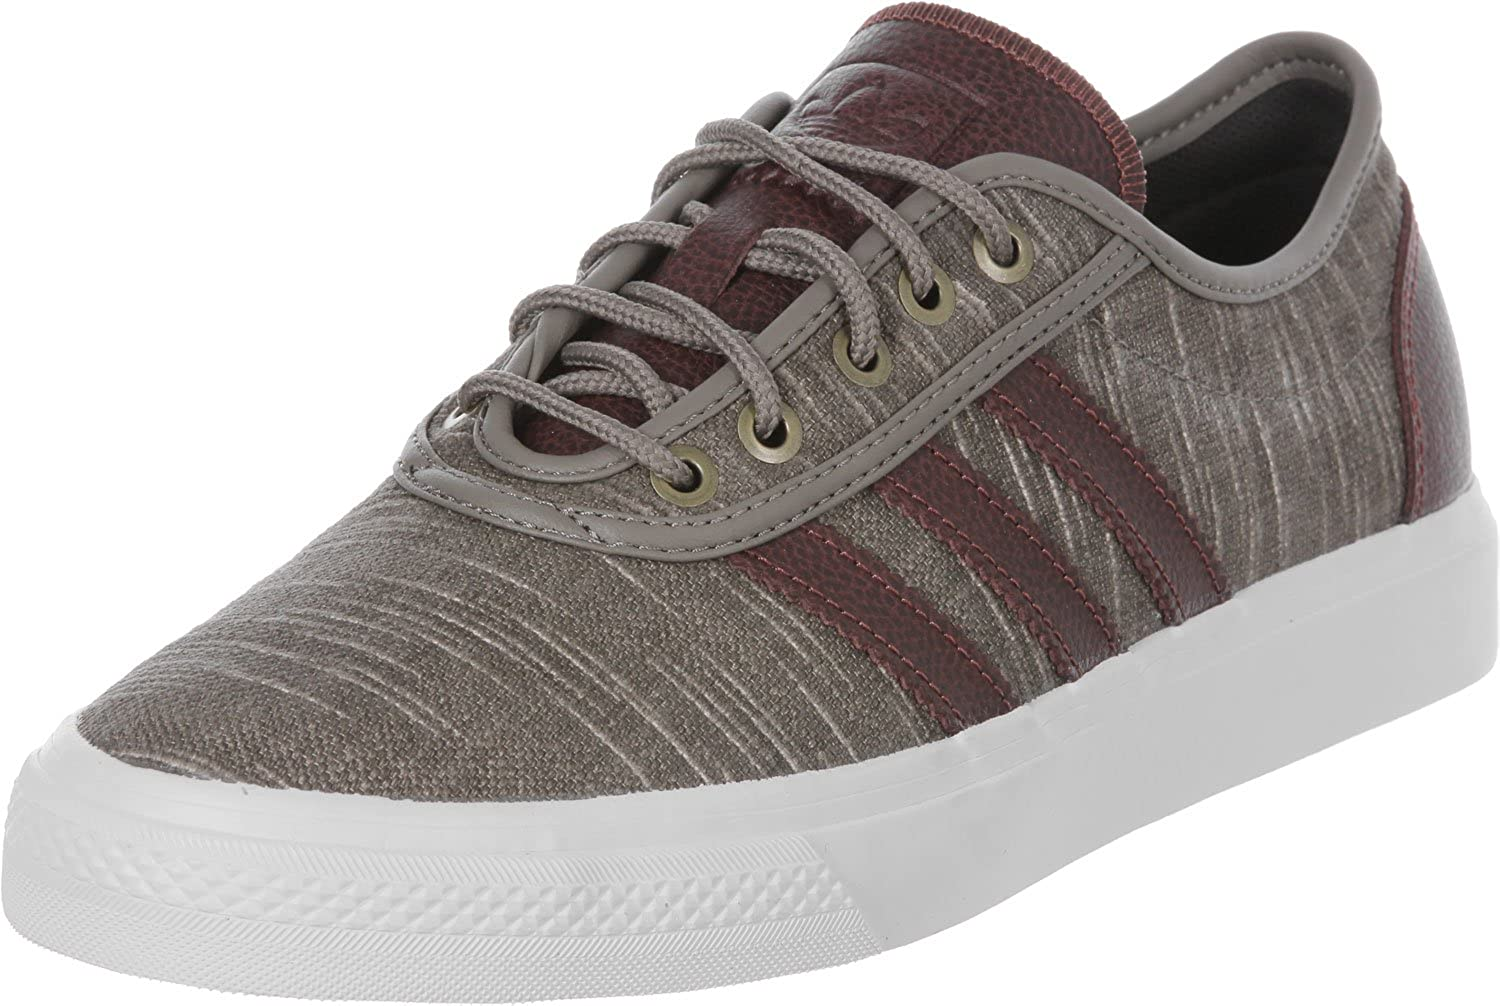 the latest 8c65b a5be3 adidas Adi-Ease Classified chaussures Amazon.fr Chaussures e